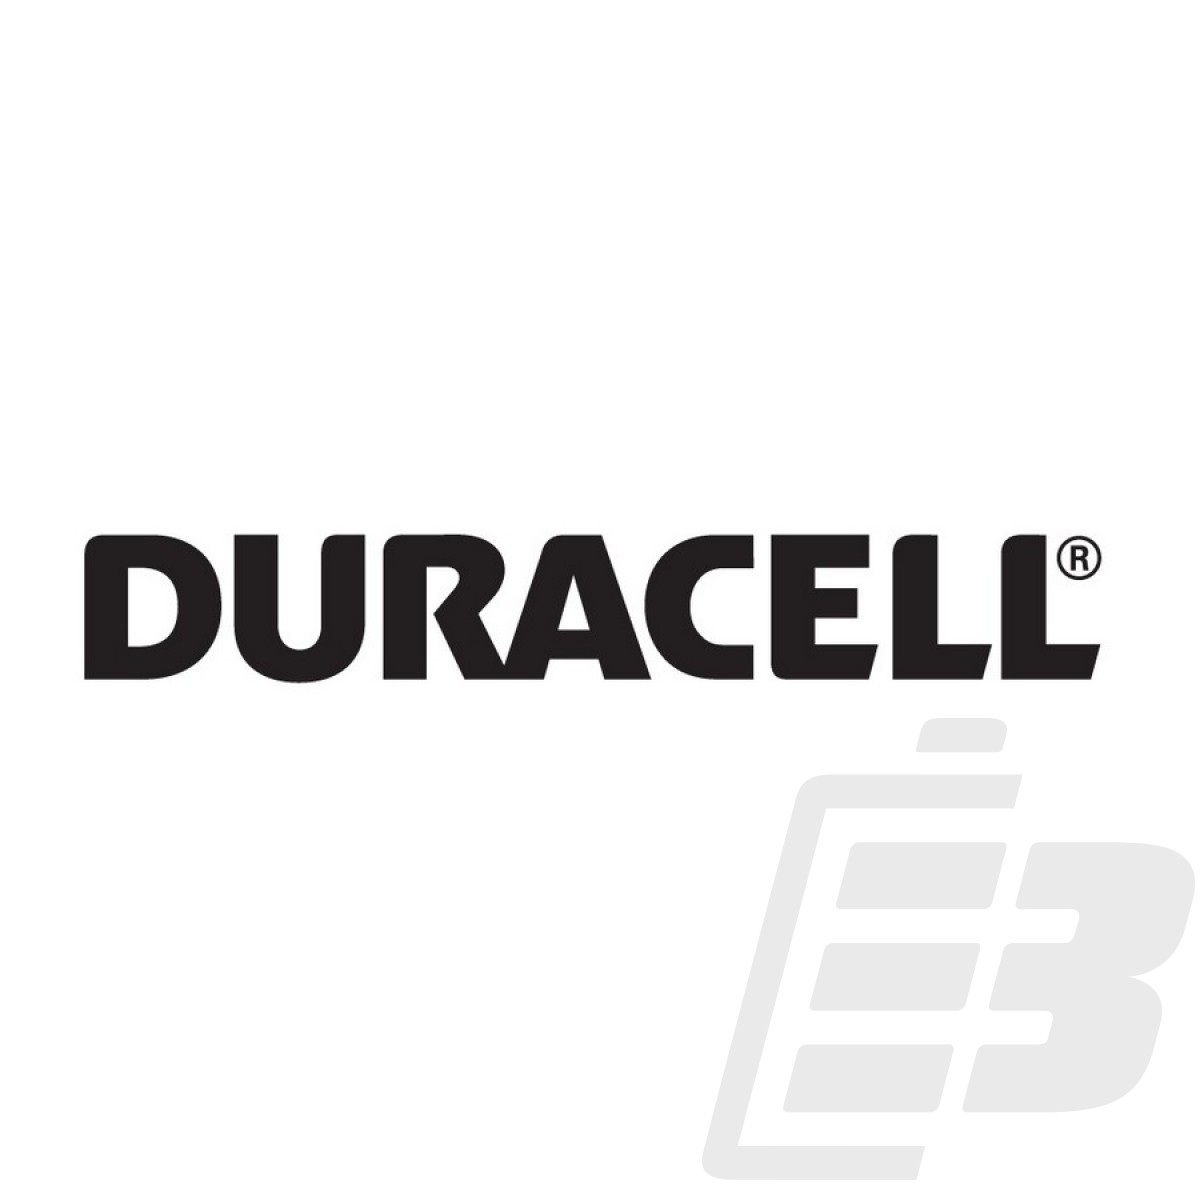 Duracell Cef22 Battery Charger